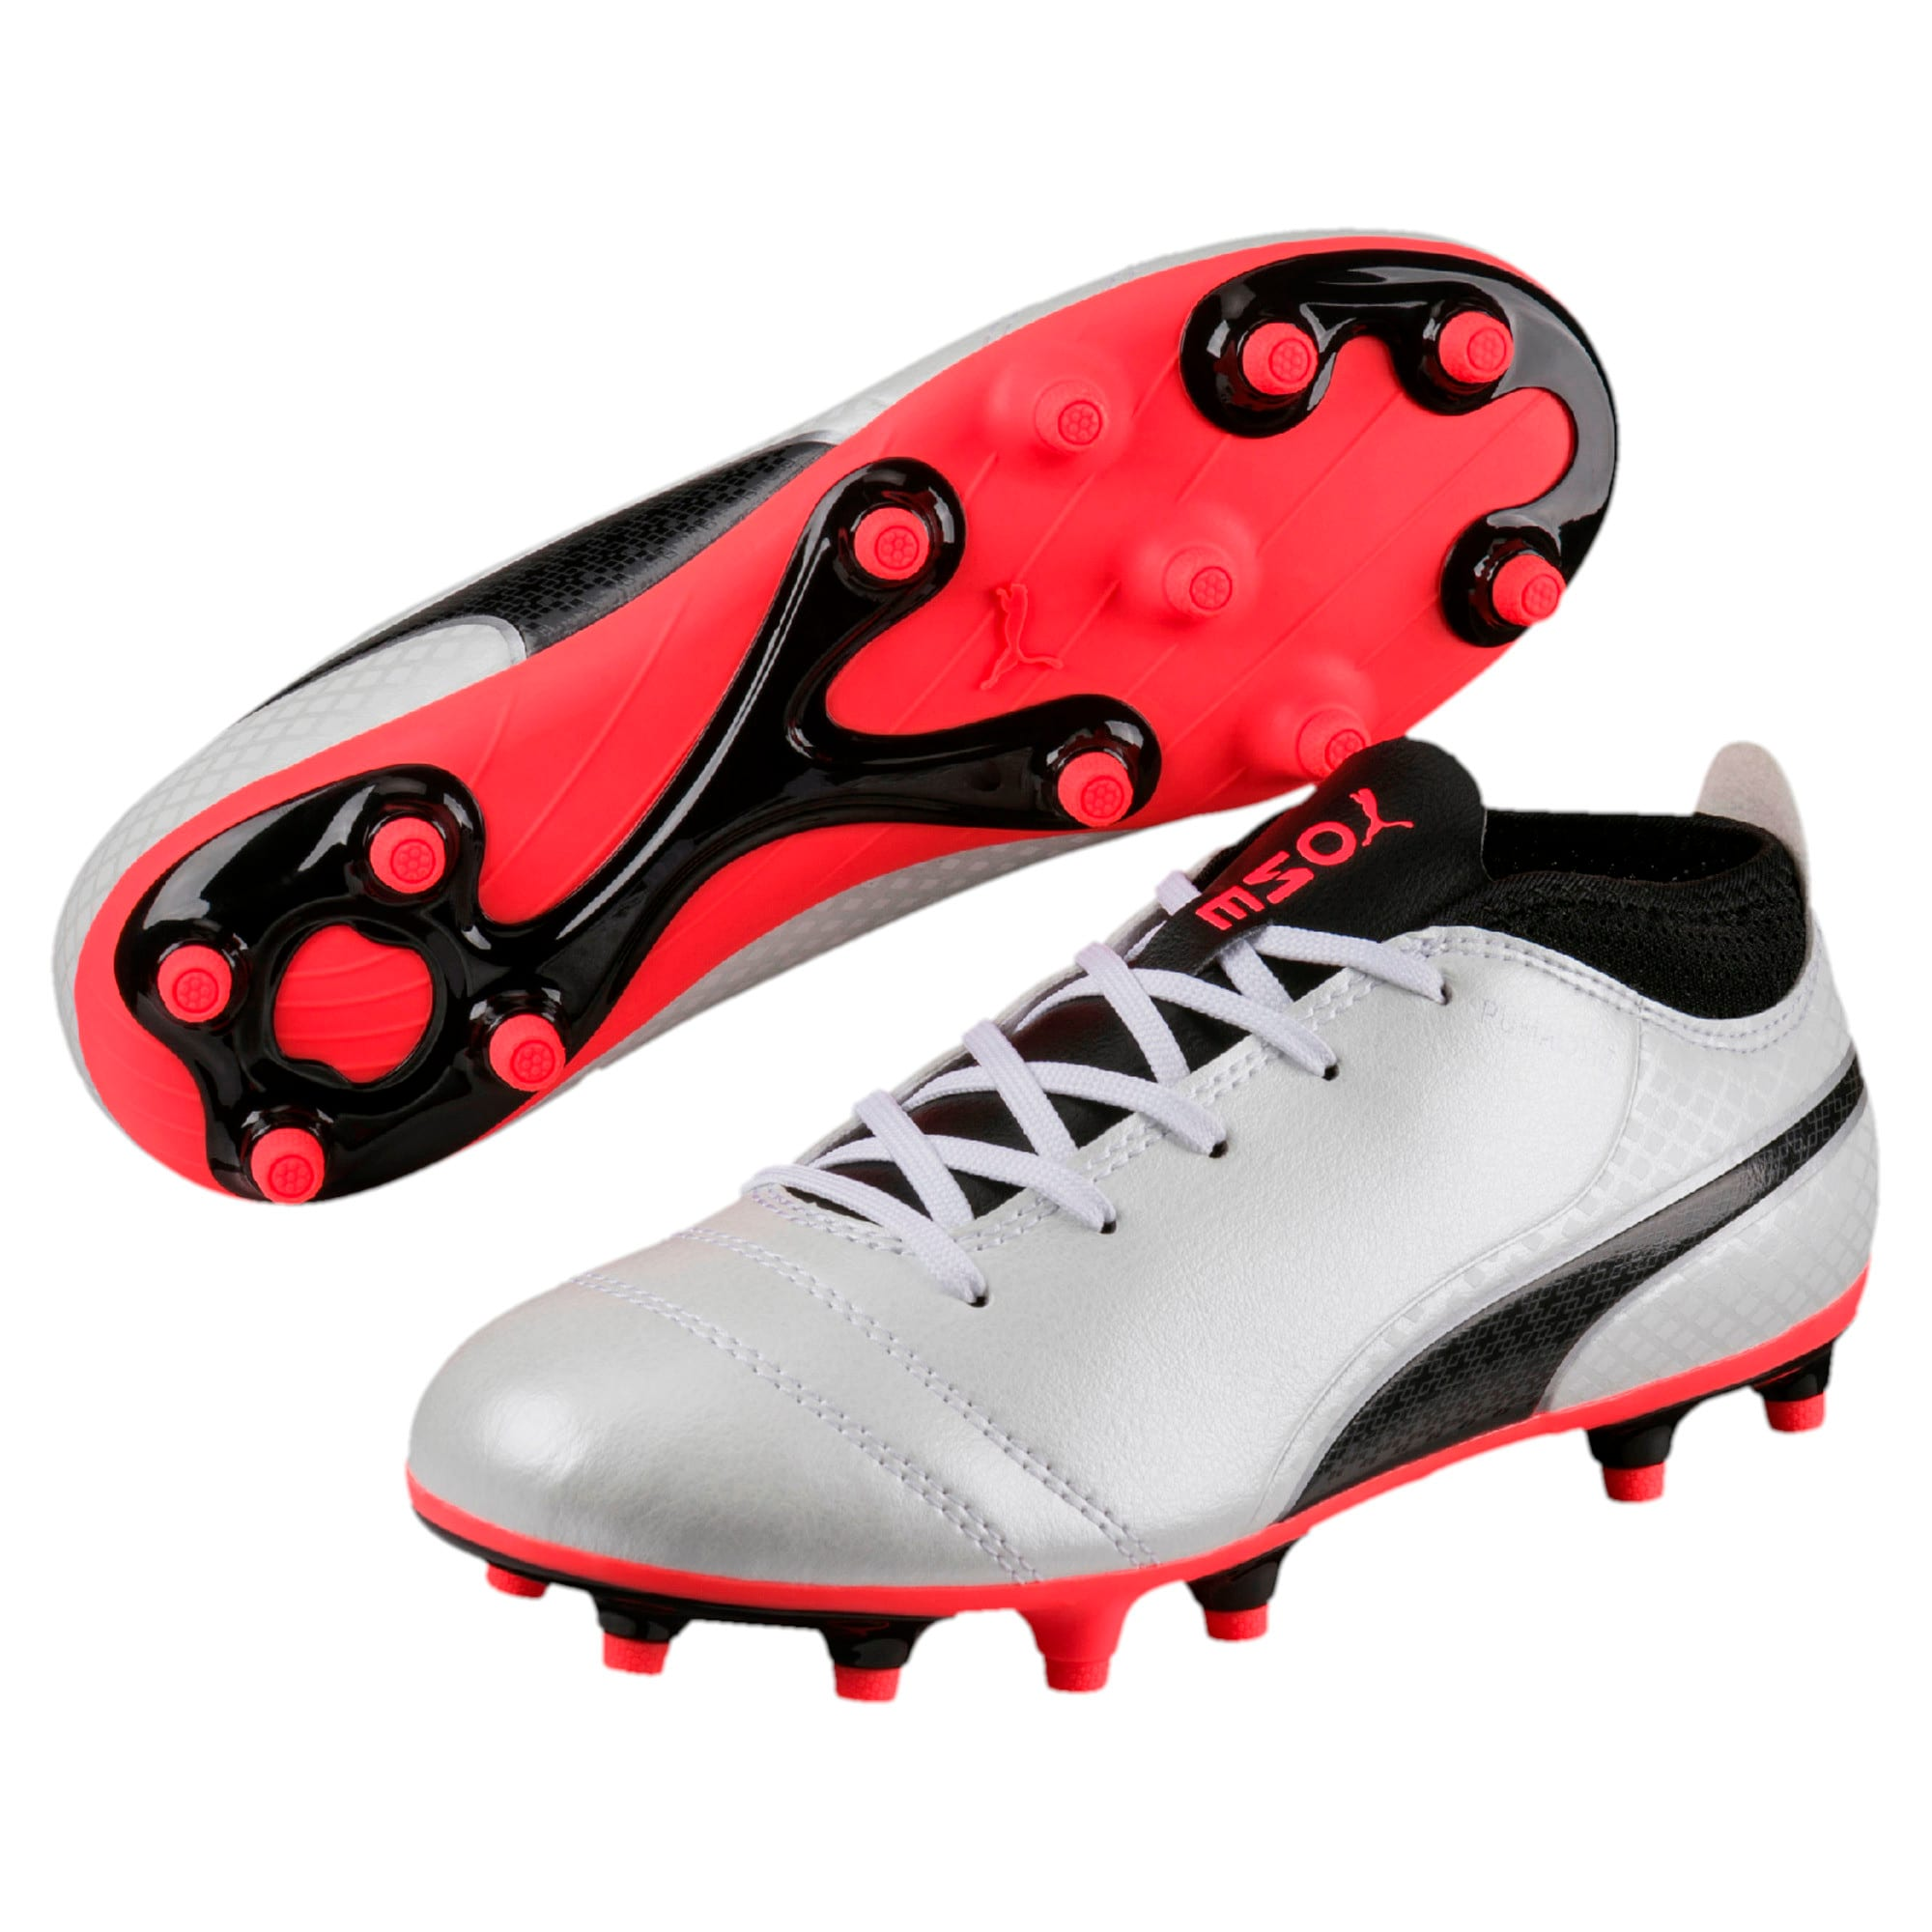 Thumbnail 6 of ONE 17.4 FG Kids' Football Boots, White-Black-Coral, medium-IND